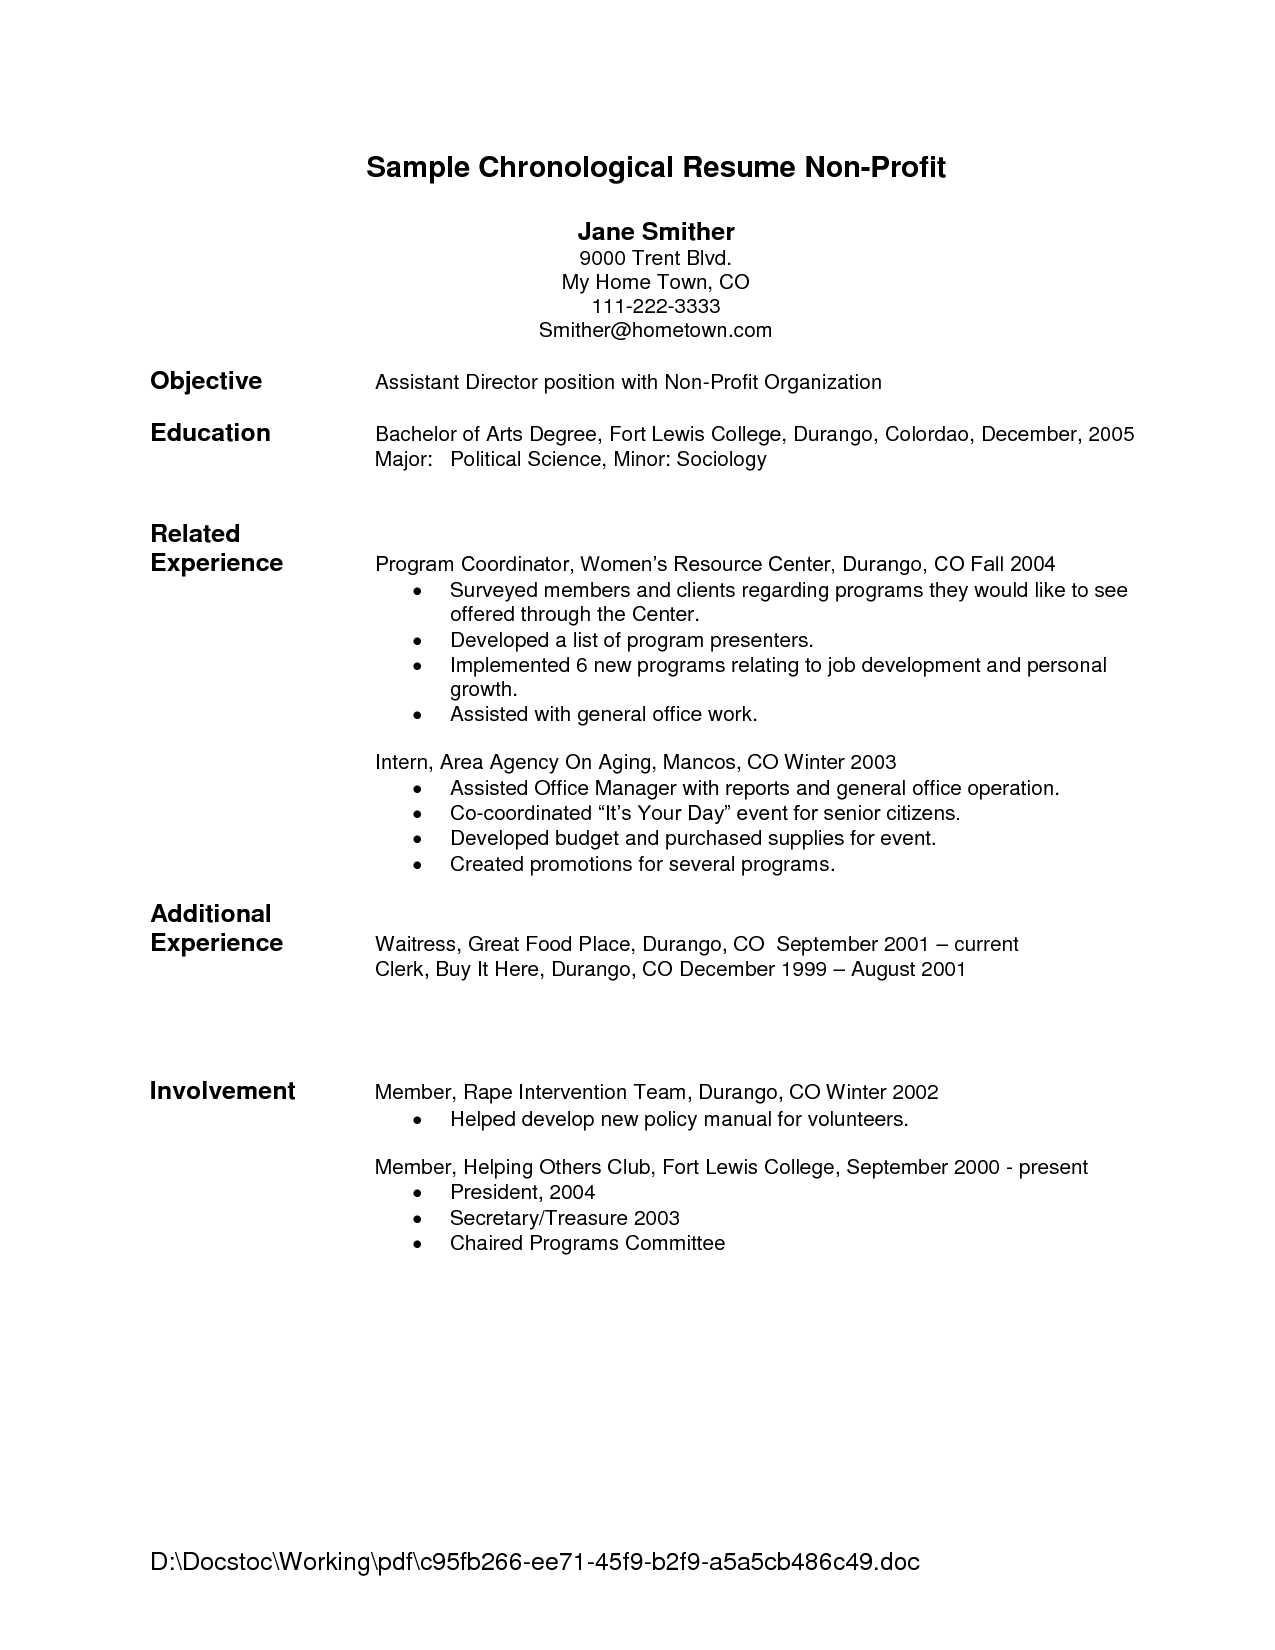 Resume Letter Template Chronological Resume Template  Monday Resume  Pinterest